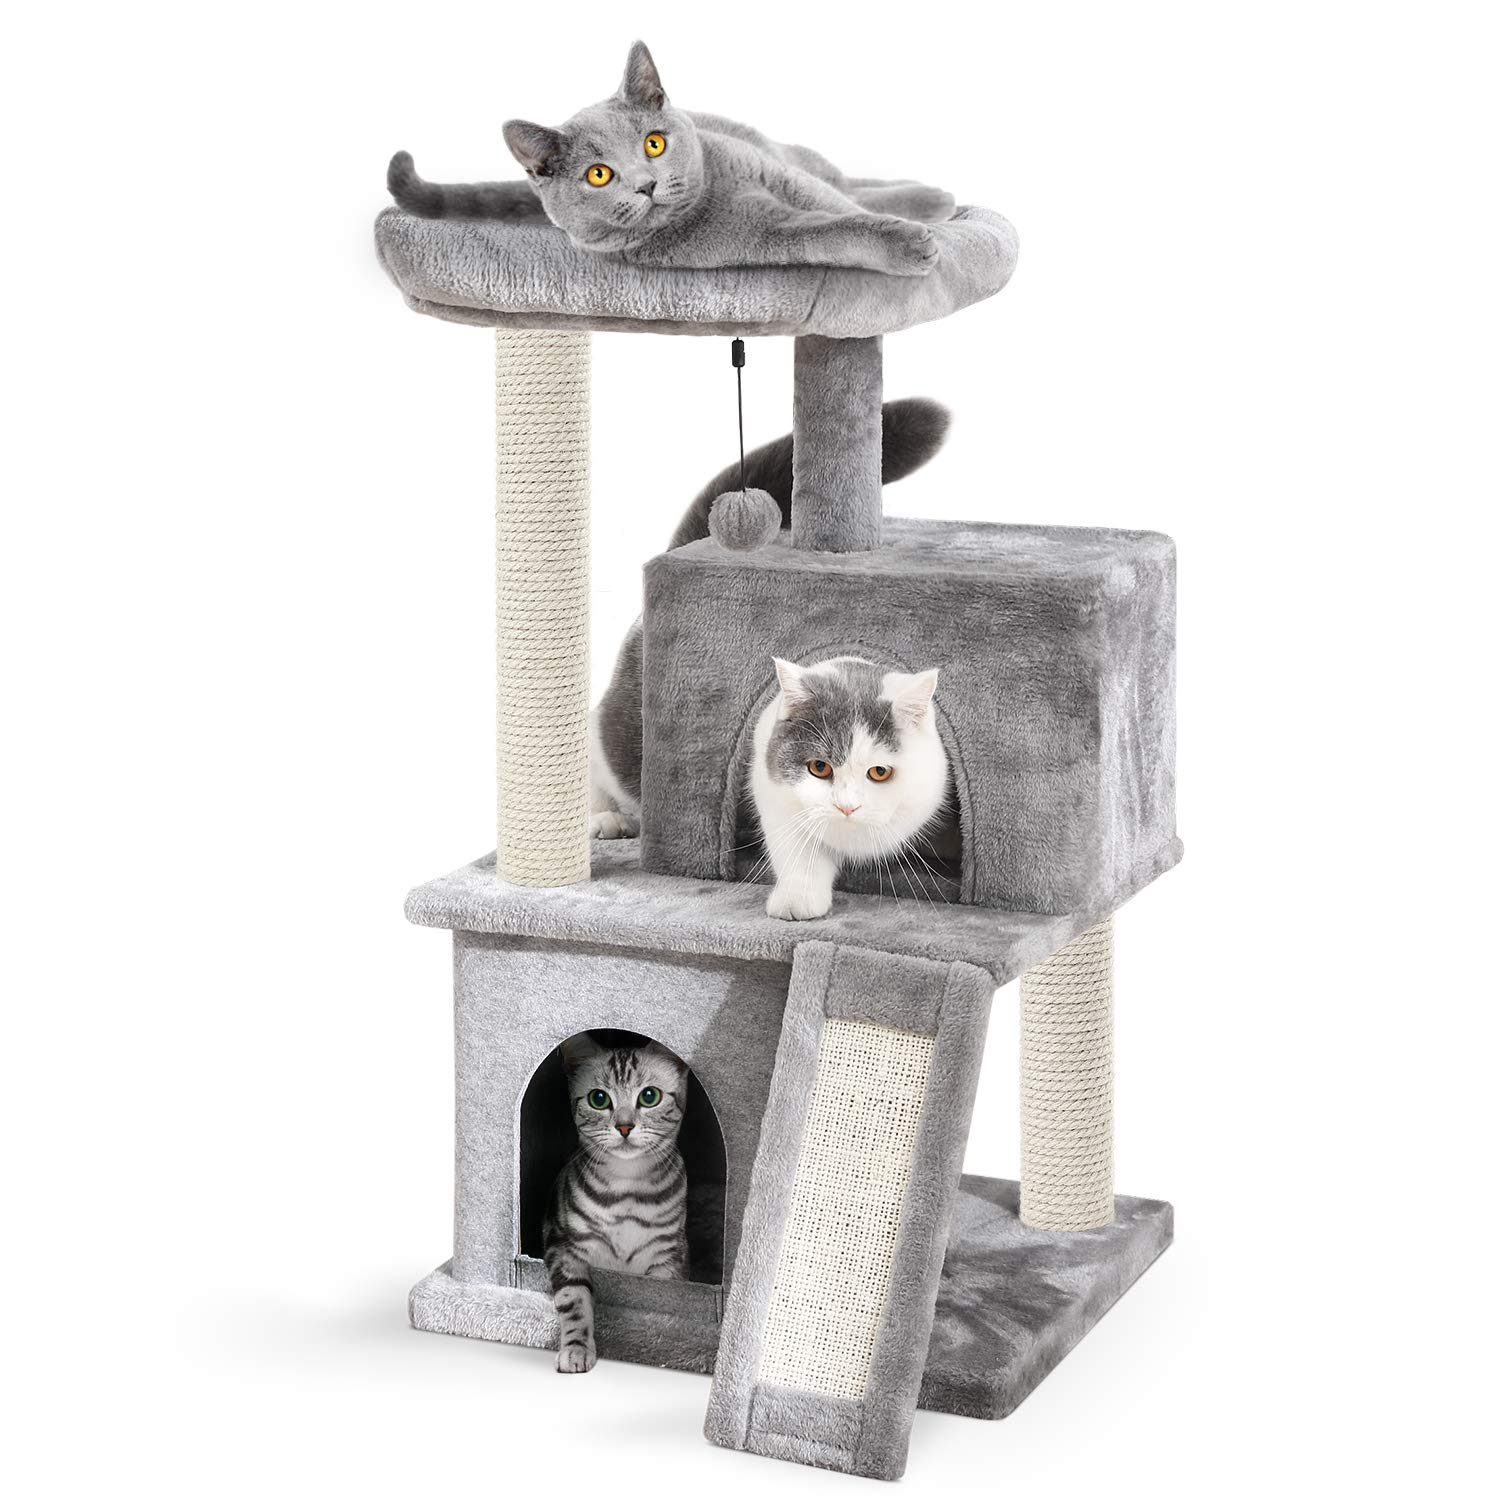 Eono Essentials Cat Tree Sisal Scratching Post Kitten Furniture Plush Condo Playhouse with Dangling Toys Cats Activity Centre Grey